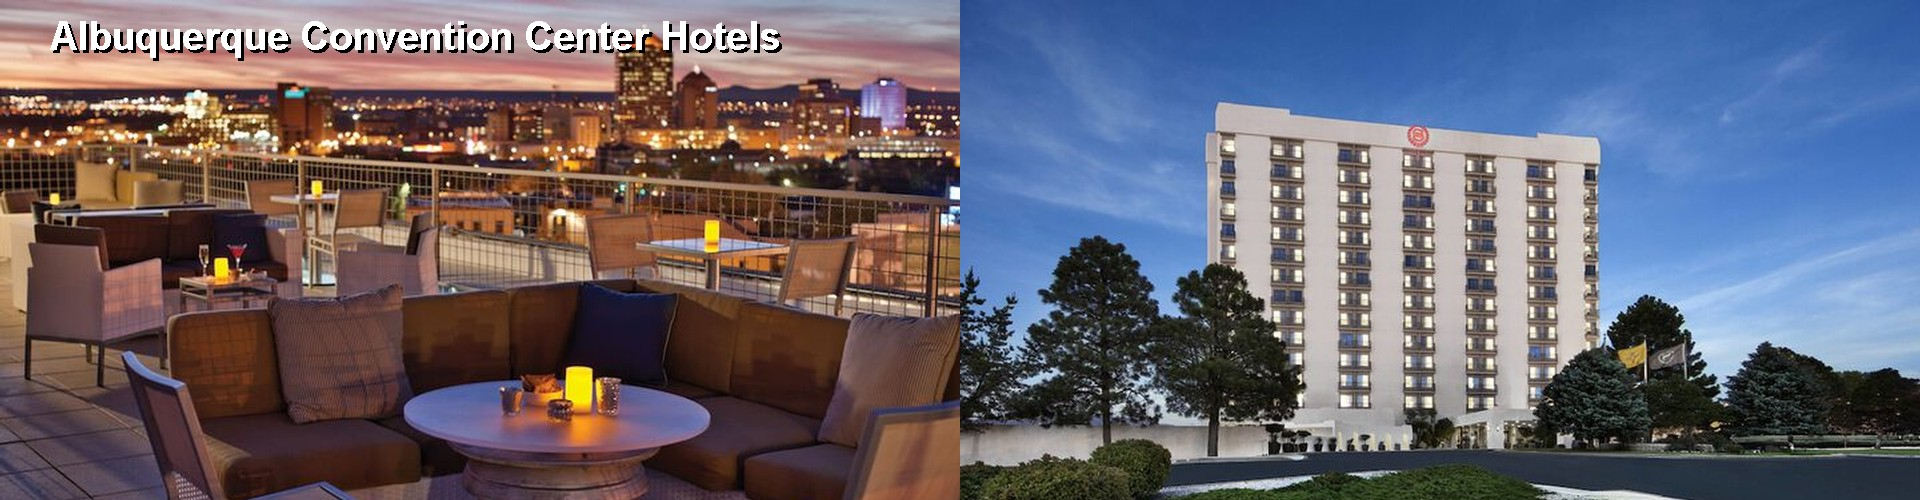 5 Best Hotels near Albuquerque Convention Center